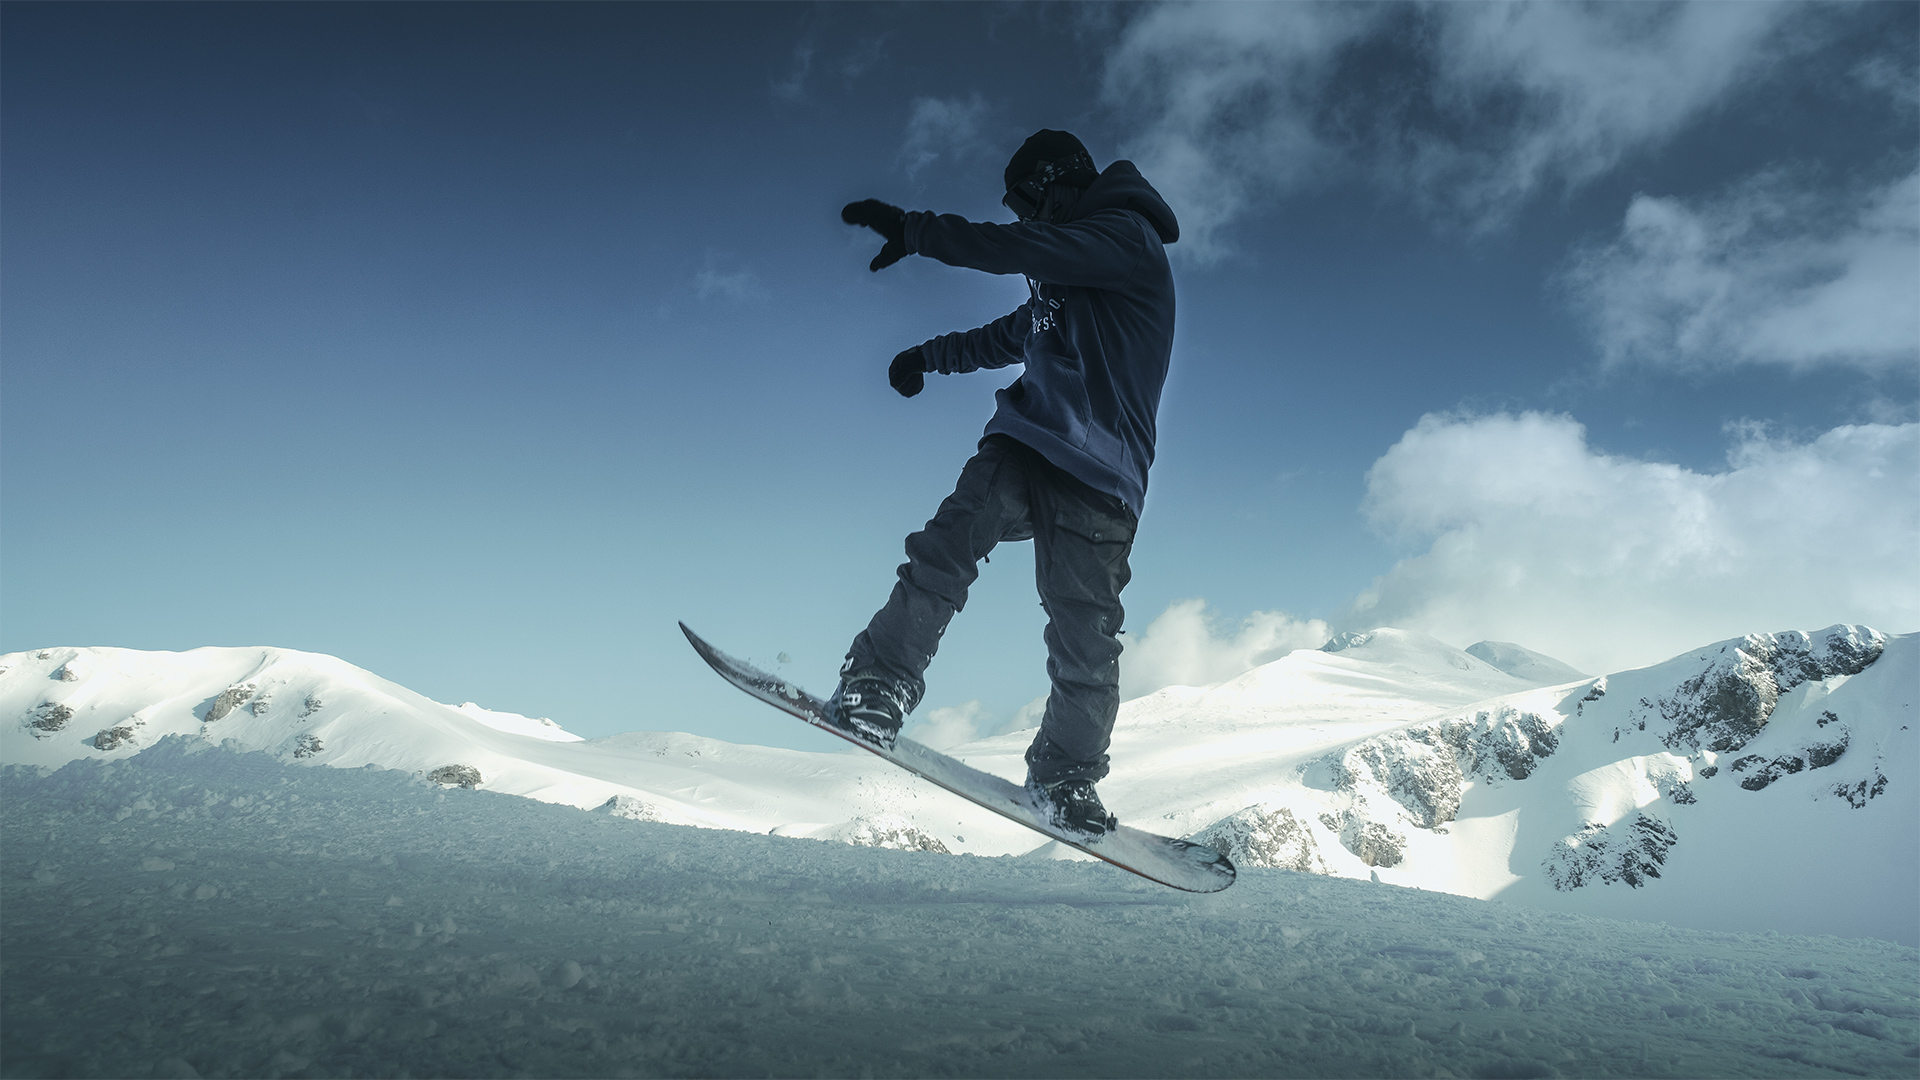 More advanced skiers will be interested in the off-piste freeride slopes and the jumps and obstacles of the snowpark